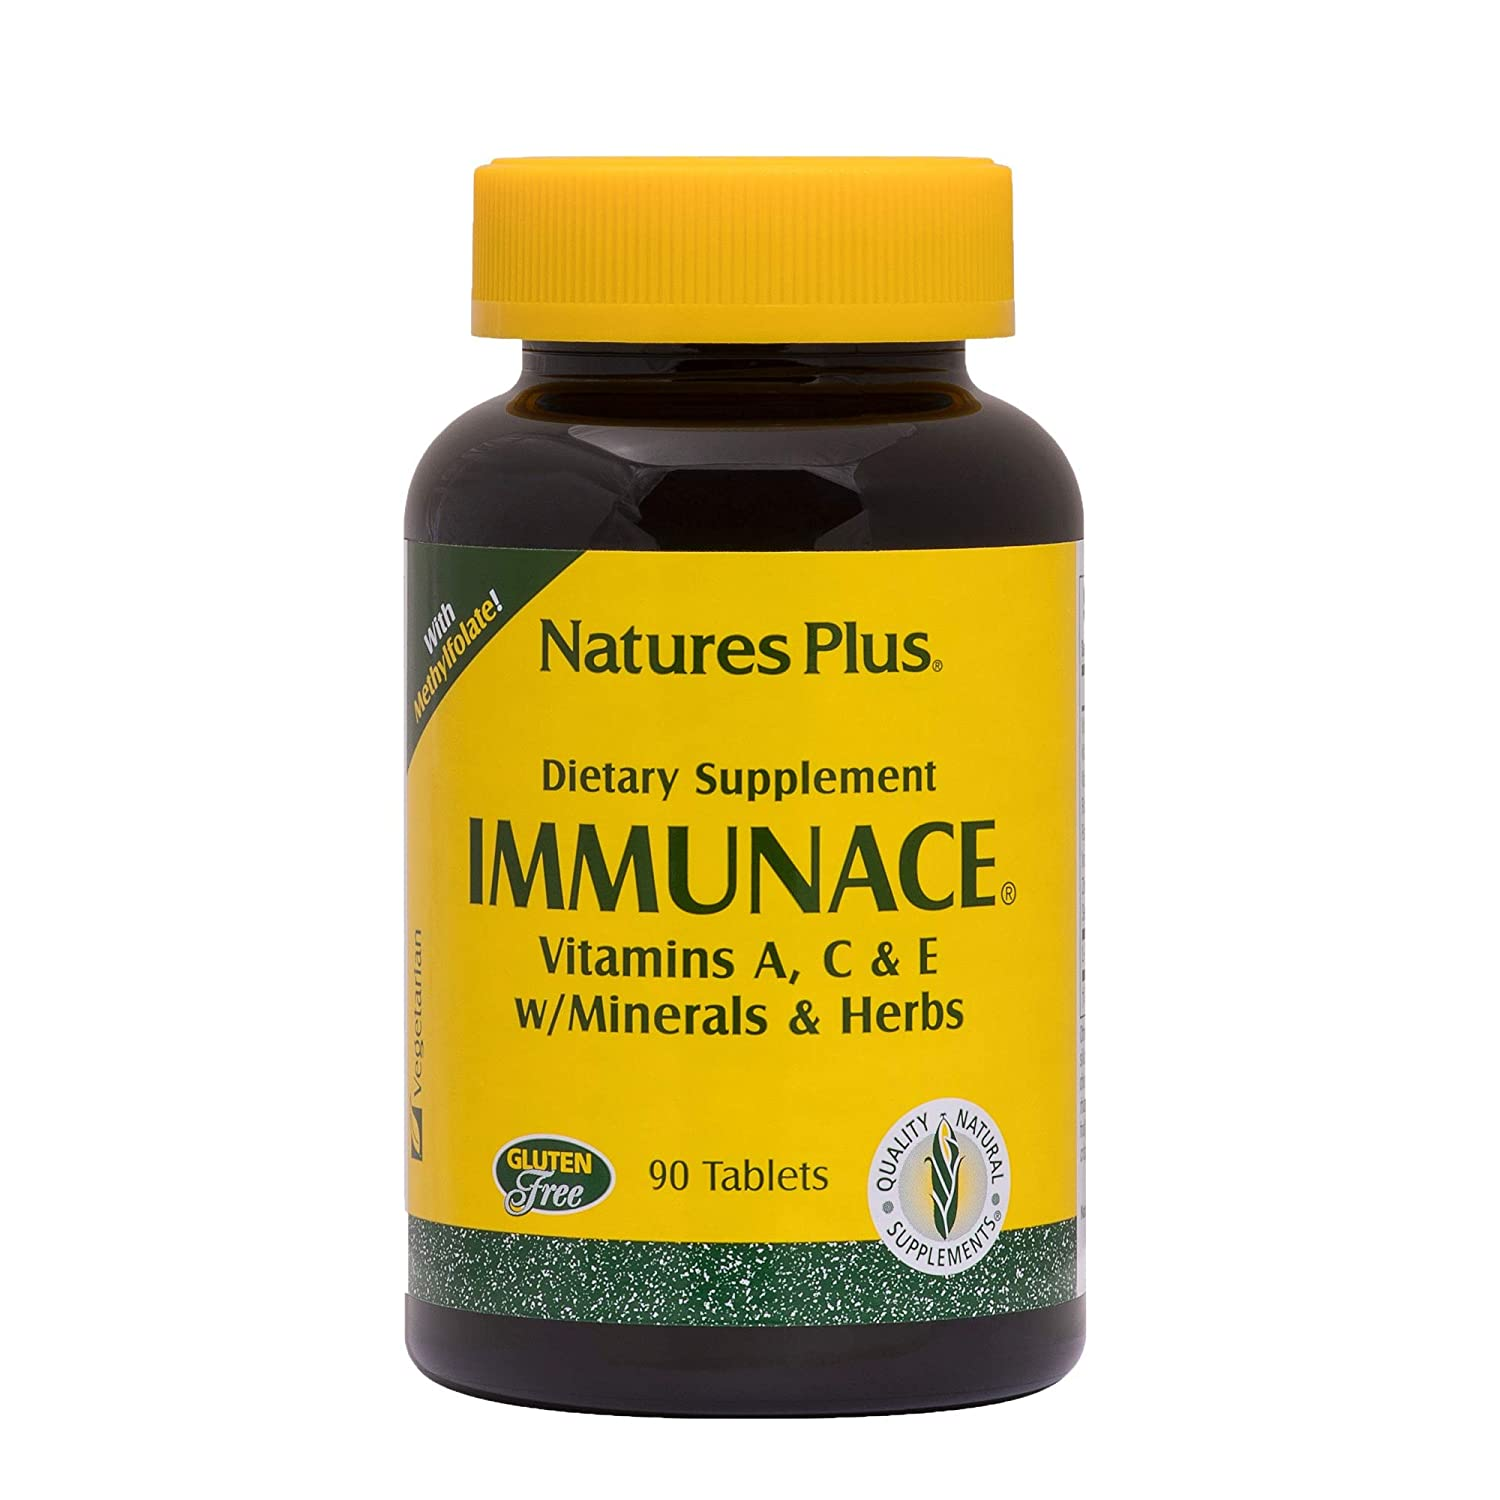 NaturesPlus ImmunAce – 90 Vegetarian Tablets – Immune Health Supplement With vitamin A, C E – Minerals Herbs – Supports Against Free-Radicals – Gluten-Free – 45 Servings